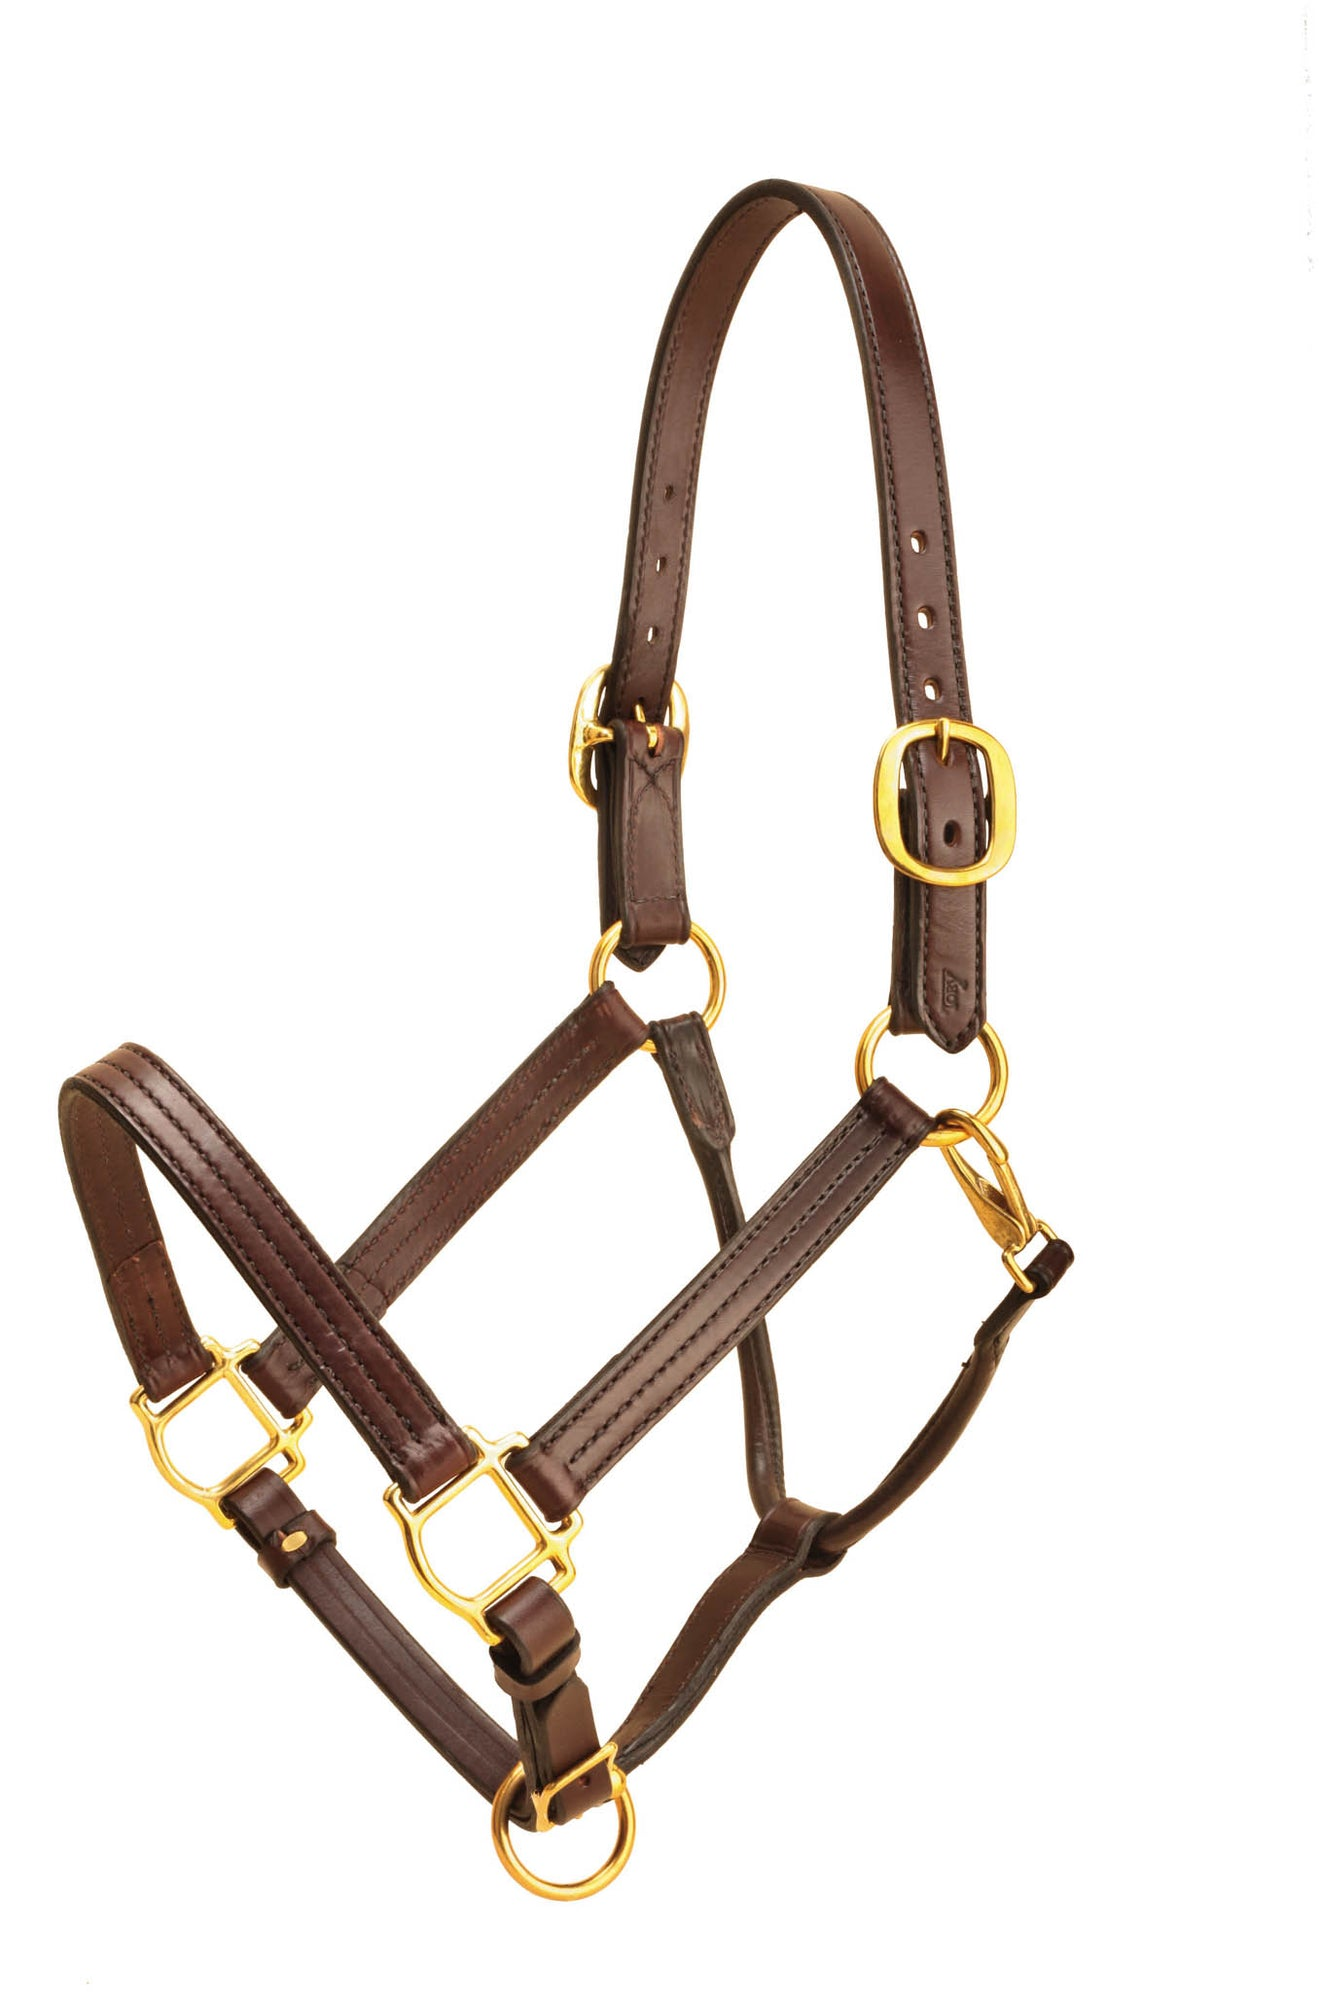 Tory Leather Horse Triple Stitched Halter W/Rolled, Snap Throat